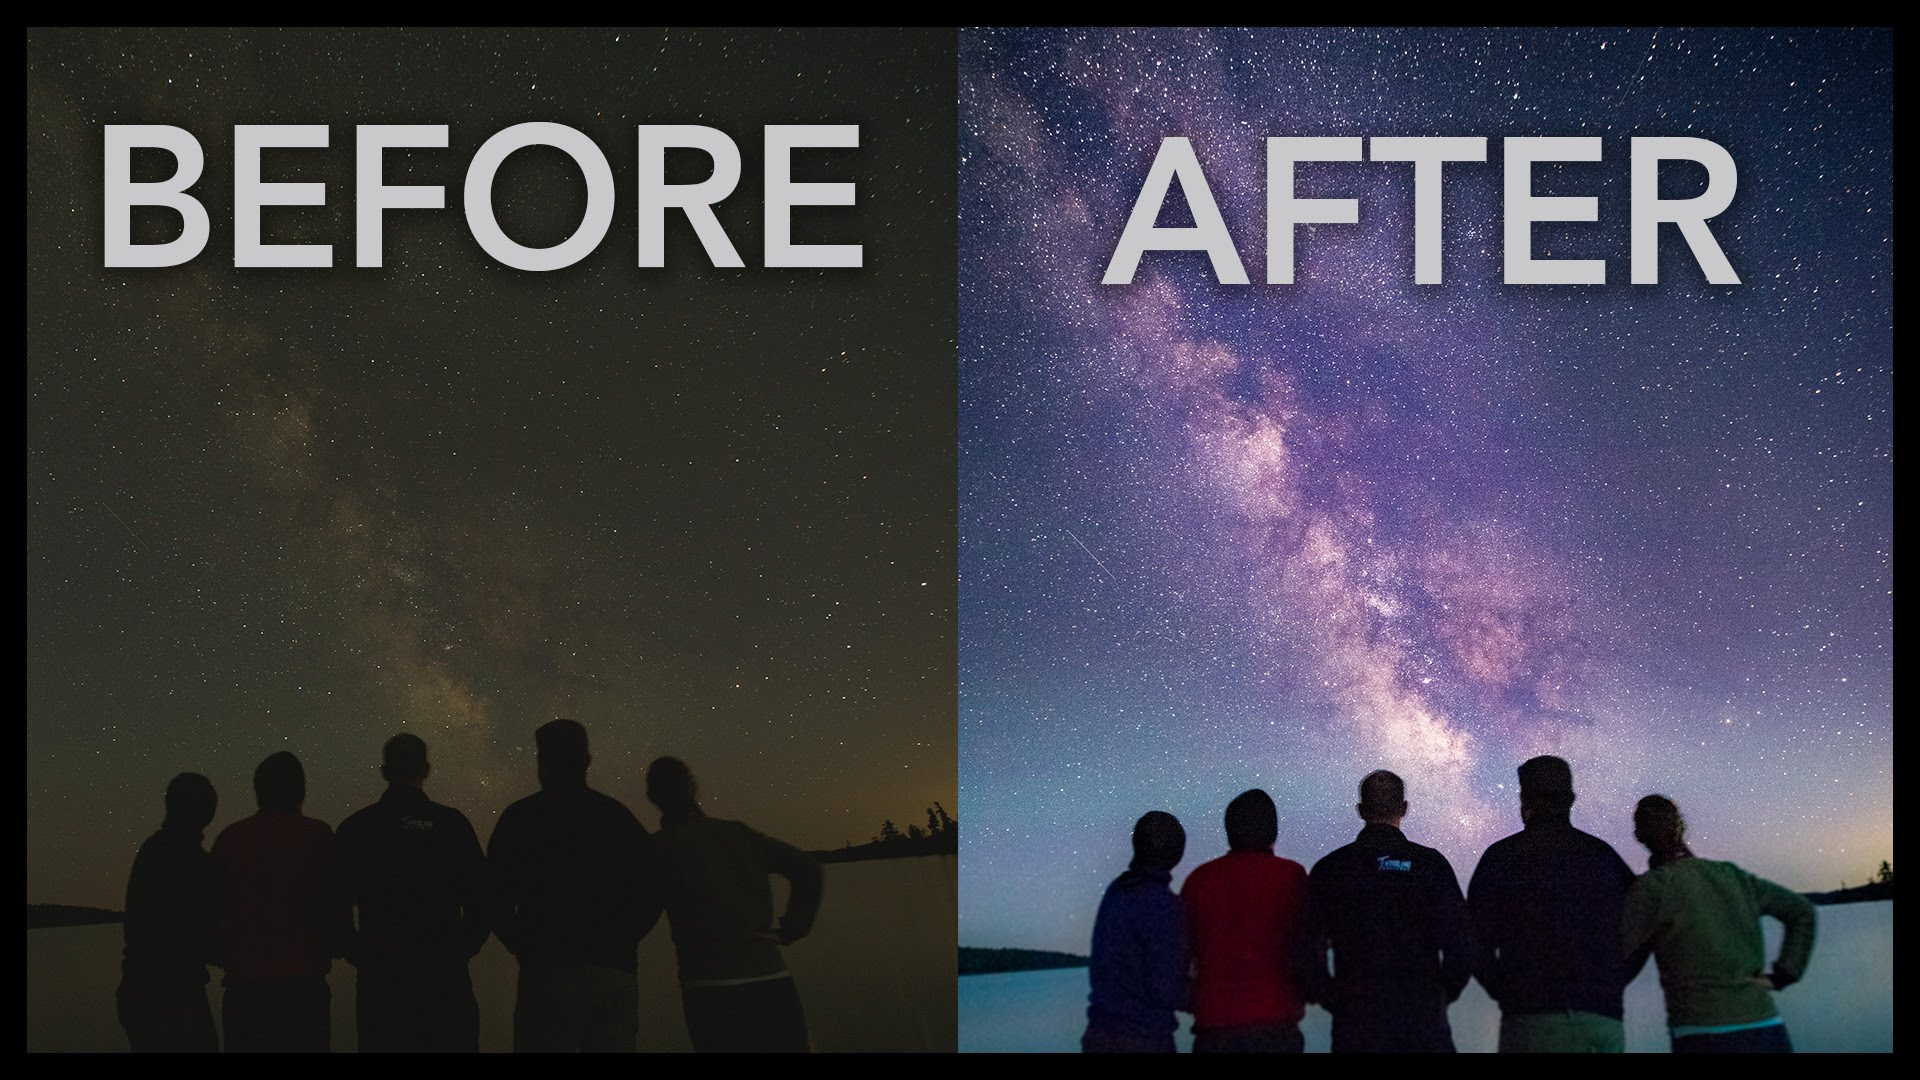 Before After Milkyway